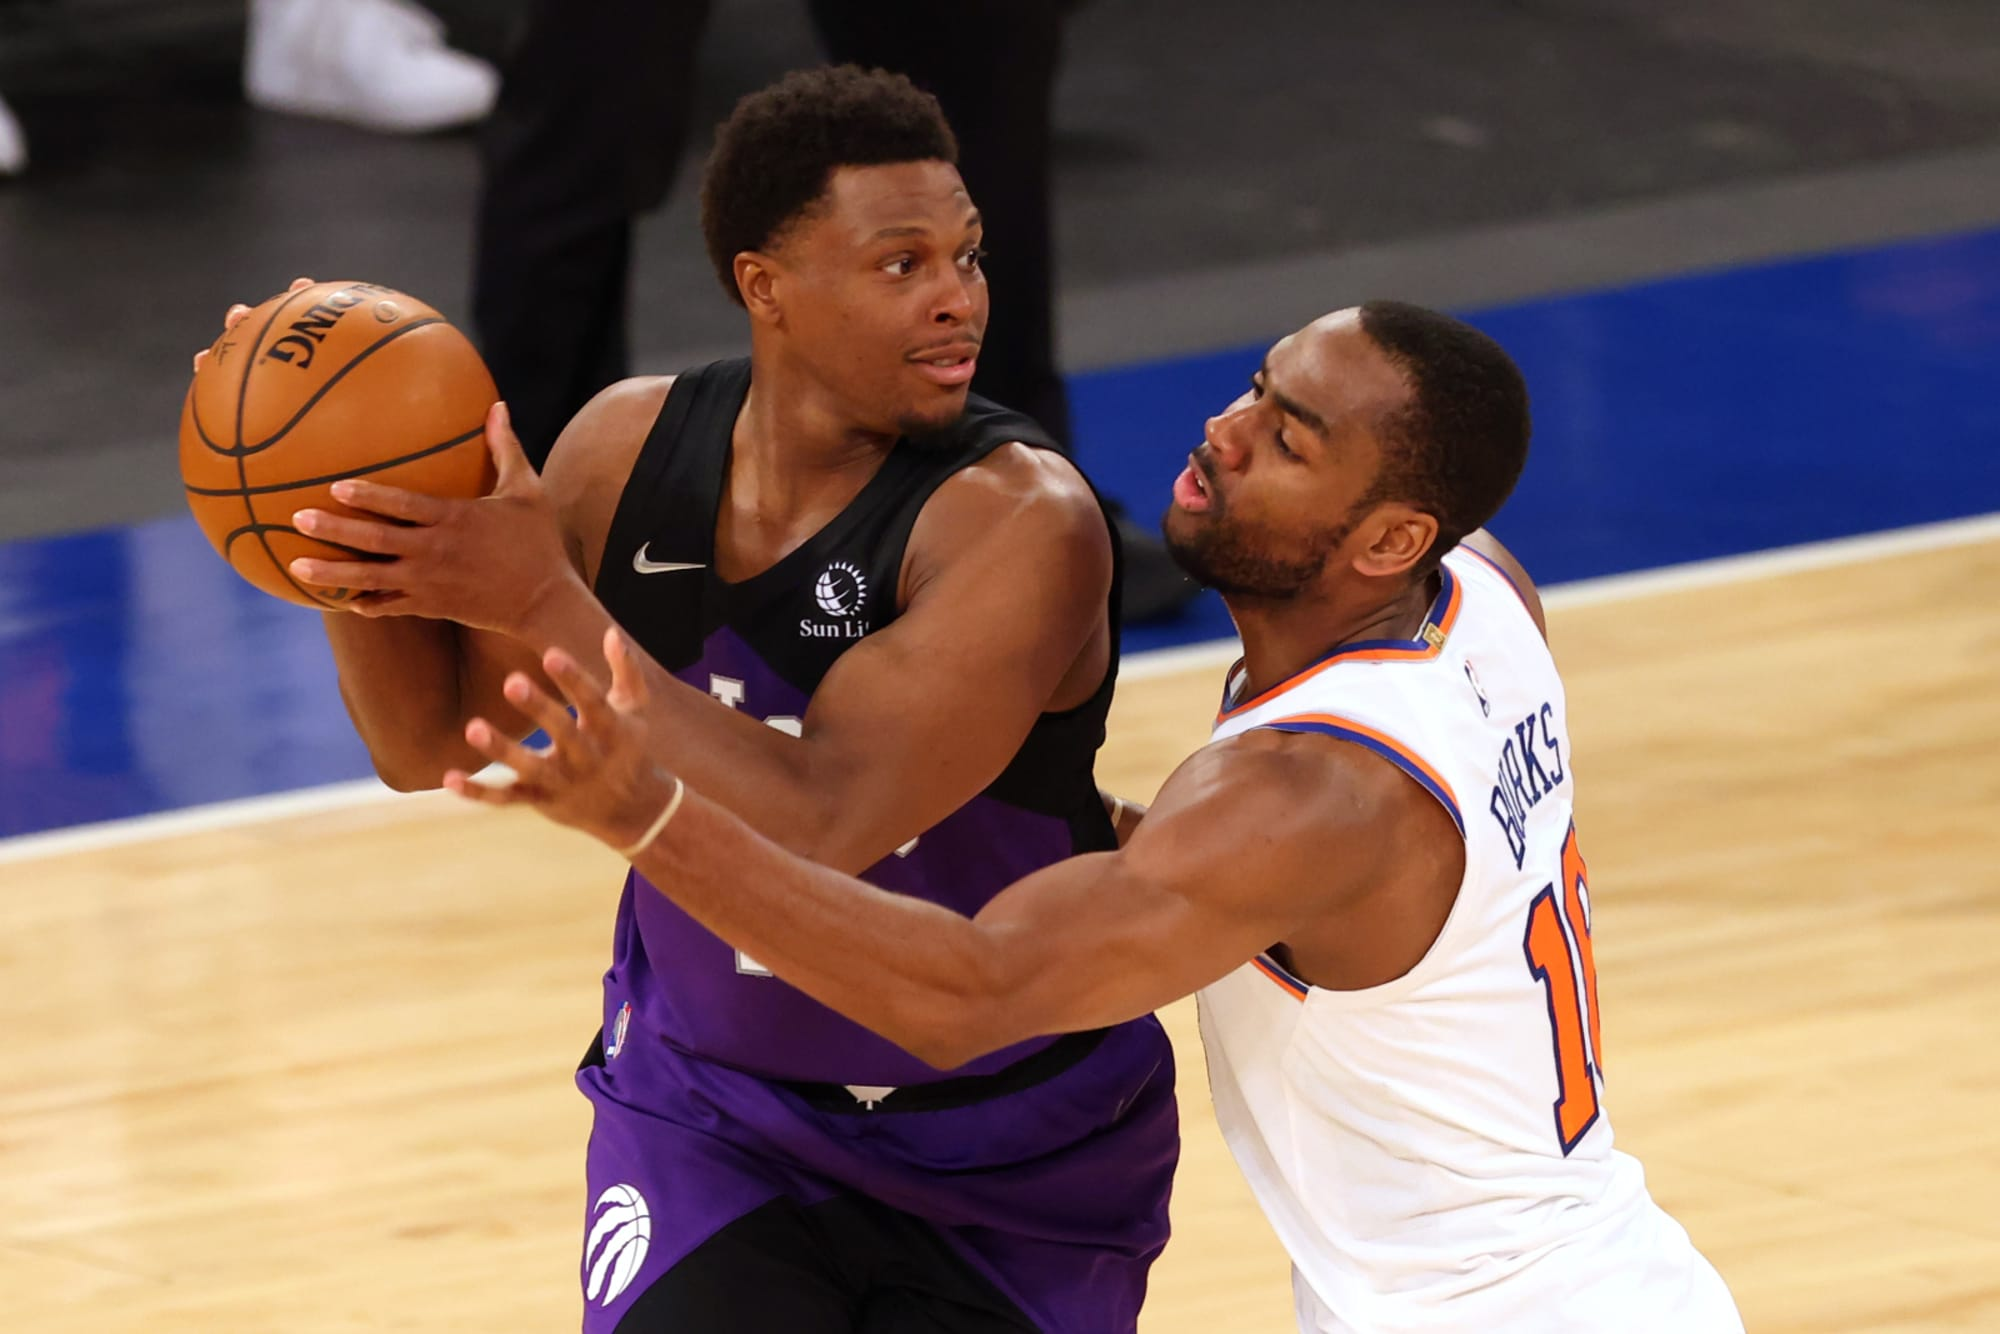 Toronto Raptors: Kyle Lowry going to the Knicks would be a gut-punch